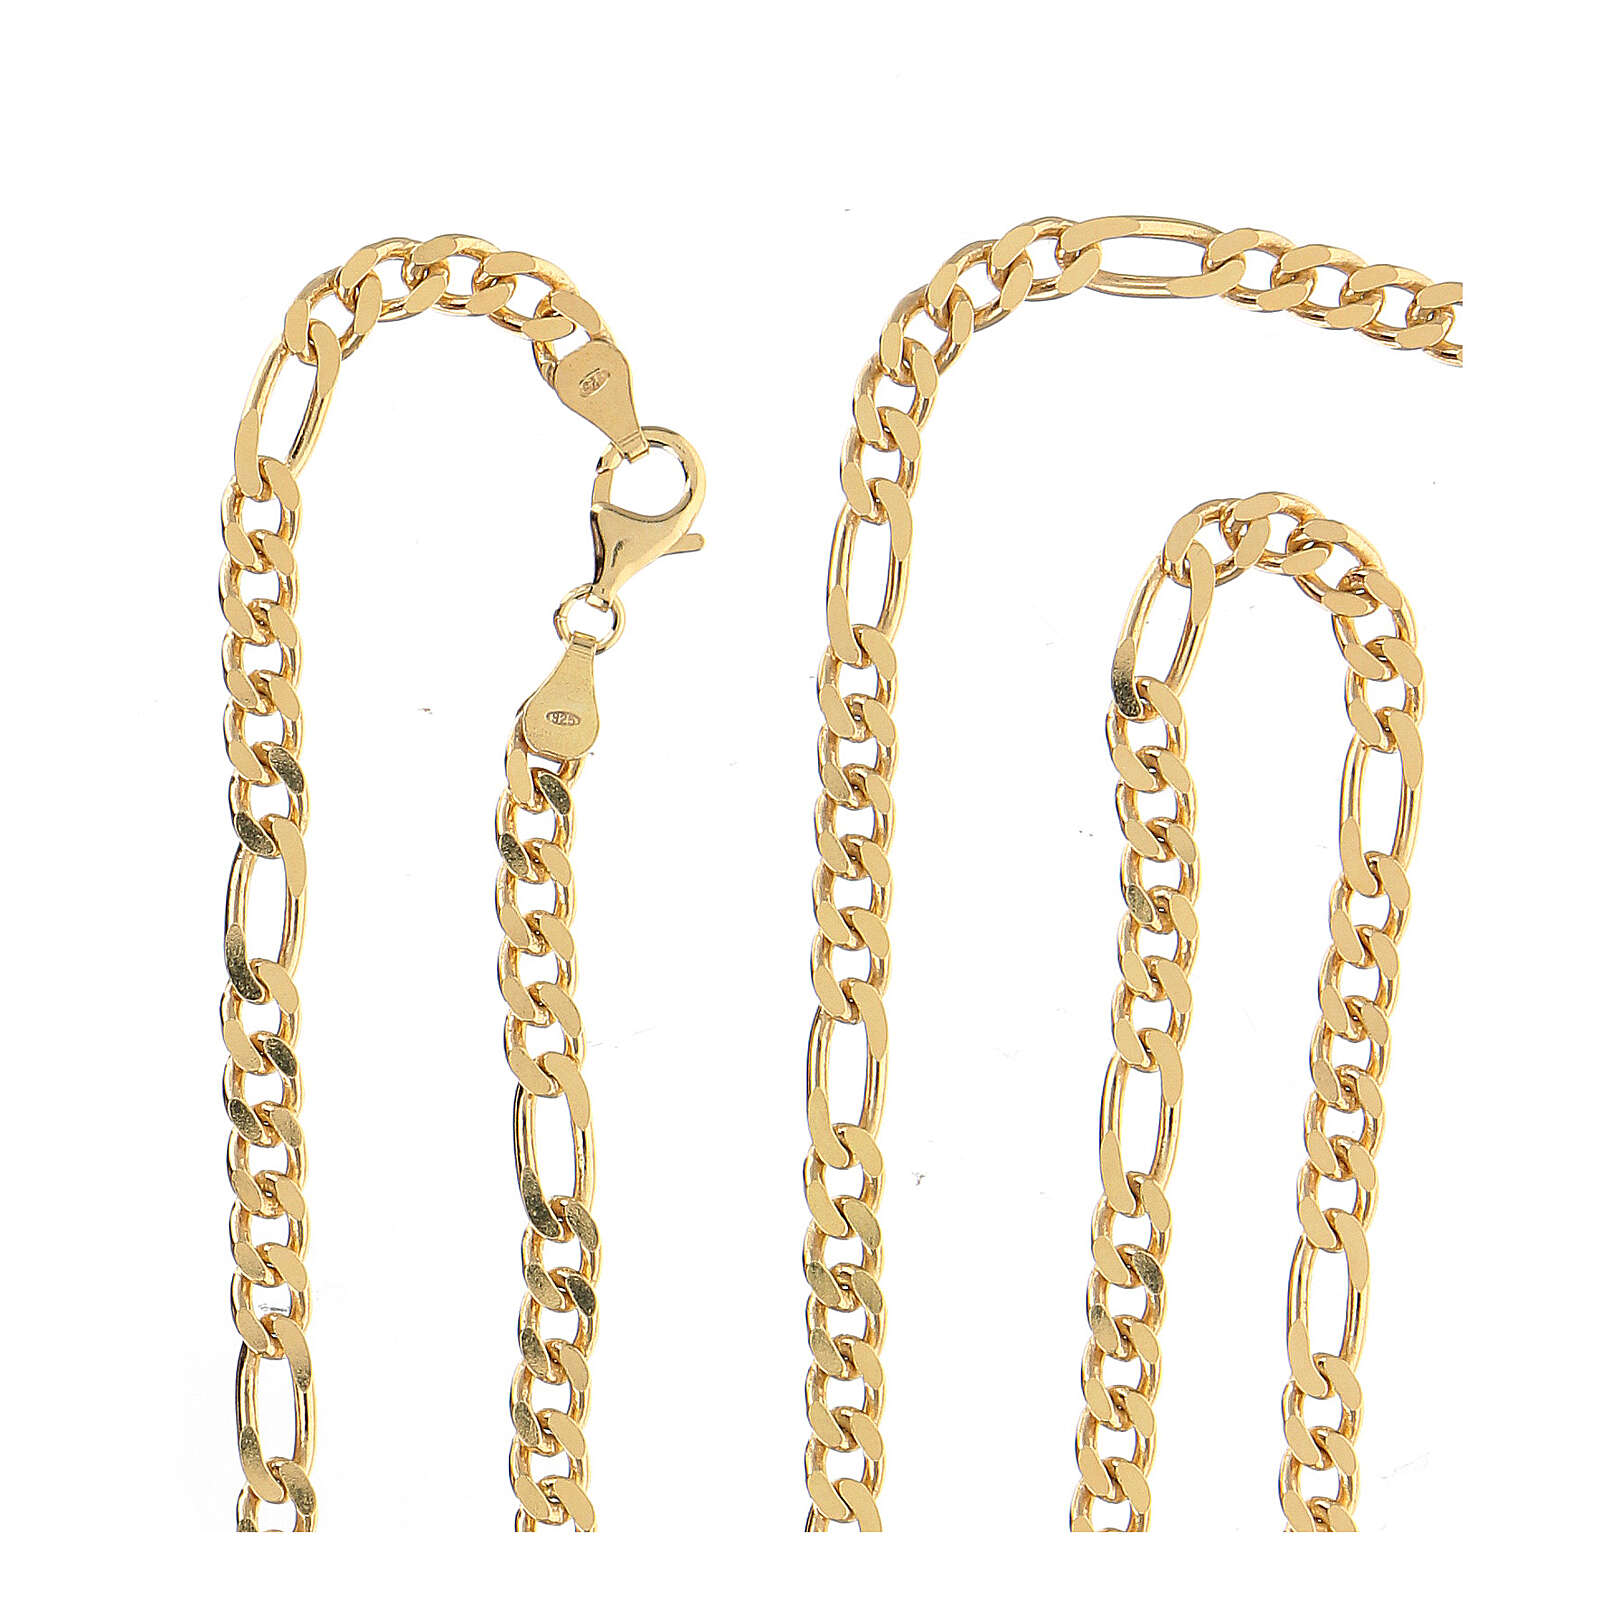 Curb chain in gold plated silver for pectoral cross, 90cm long 3